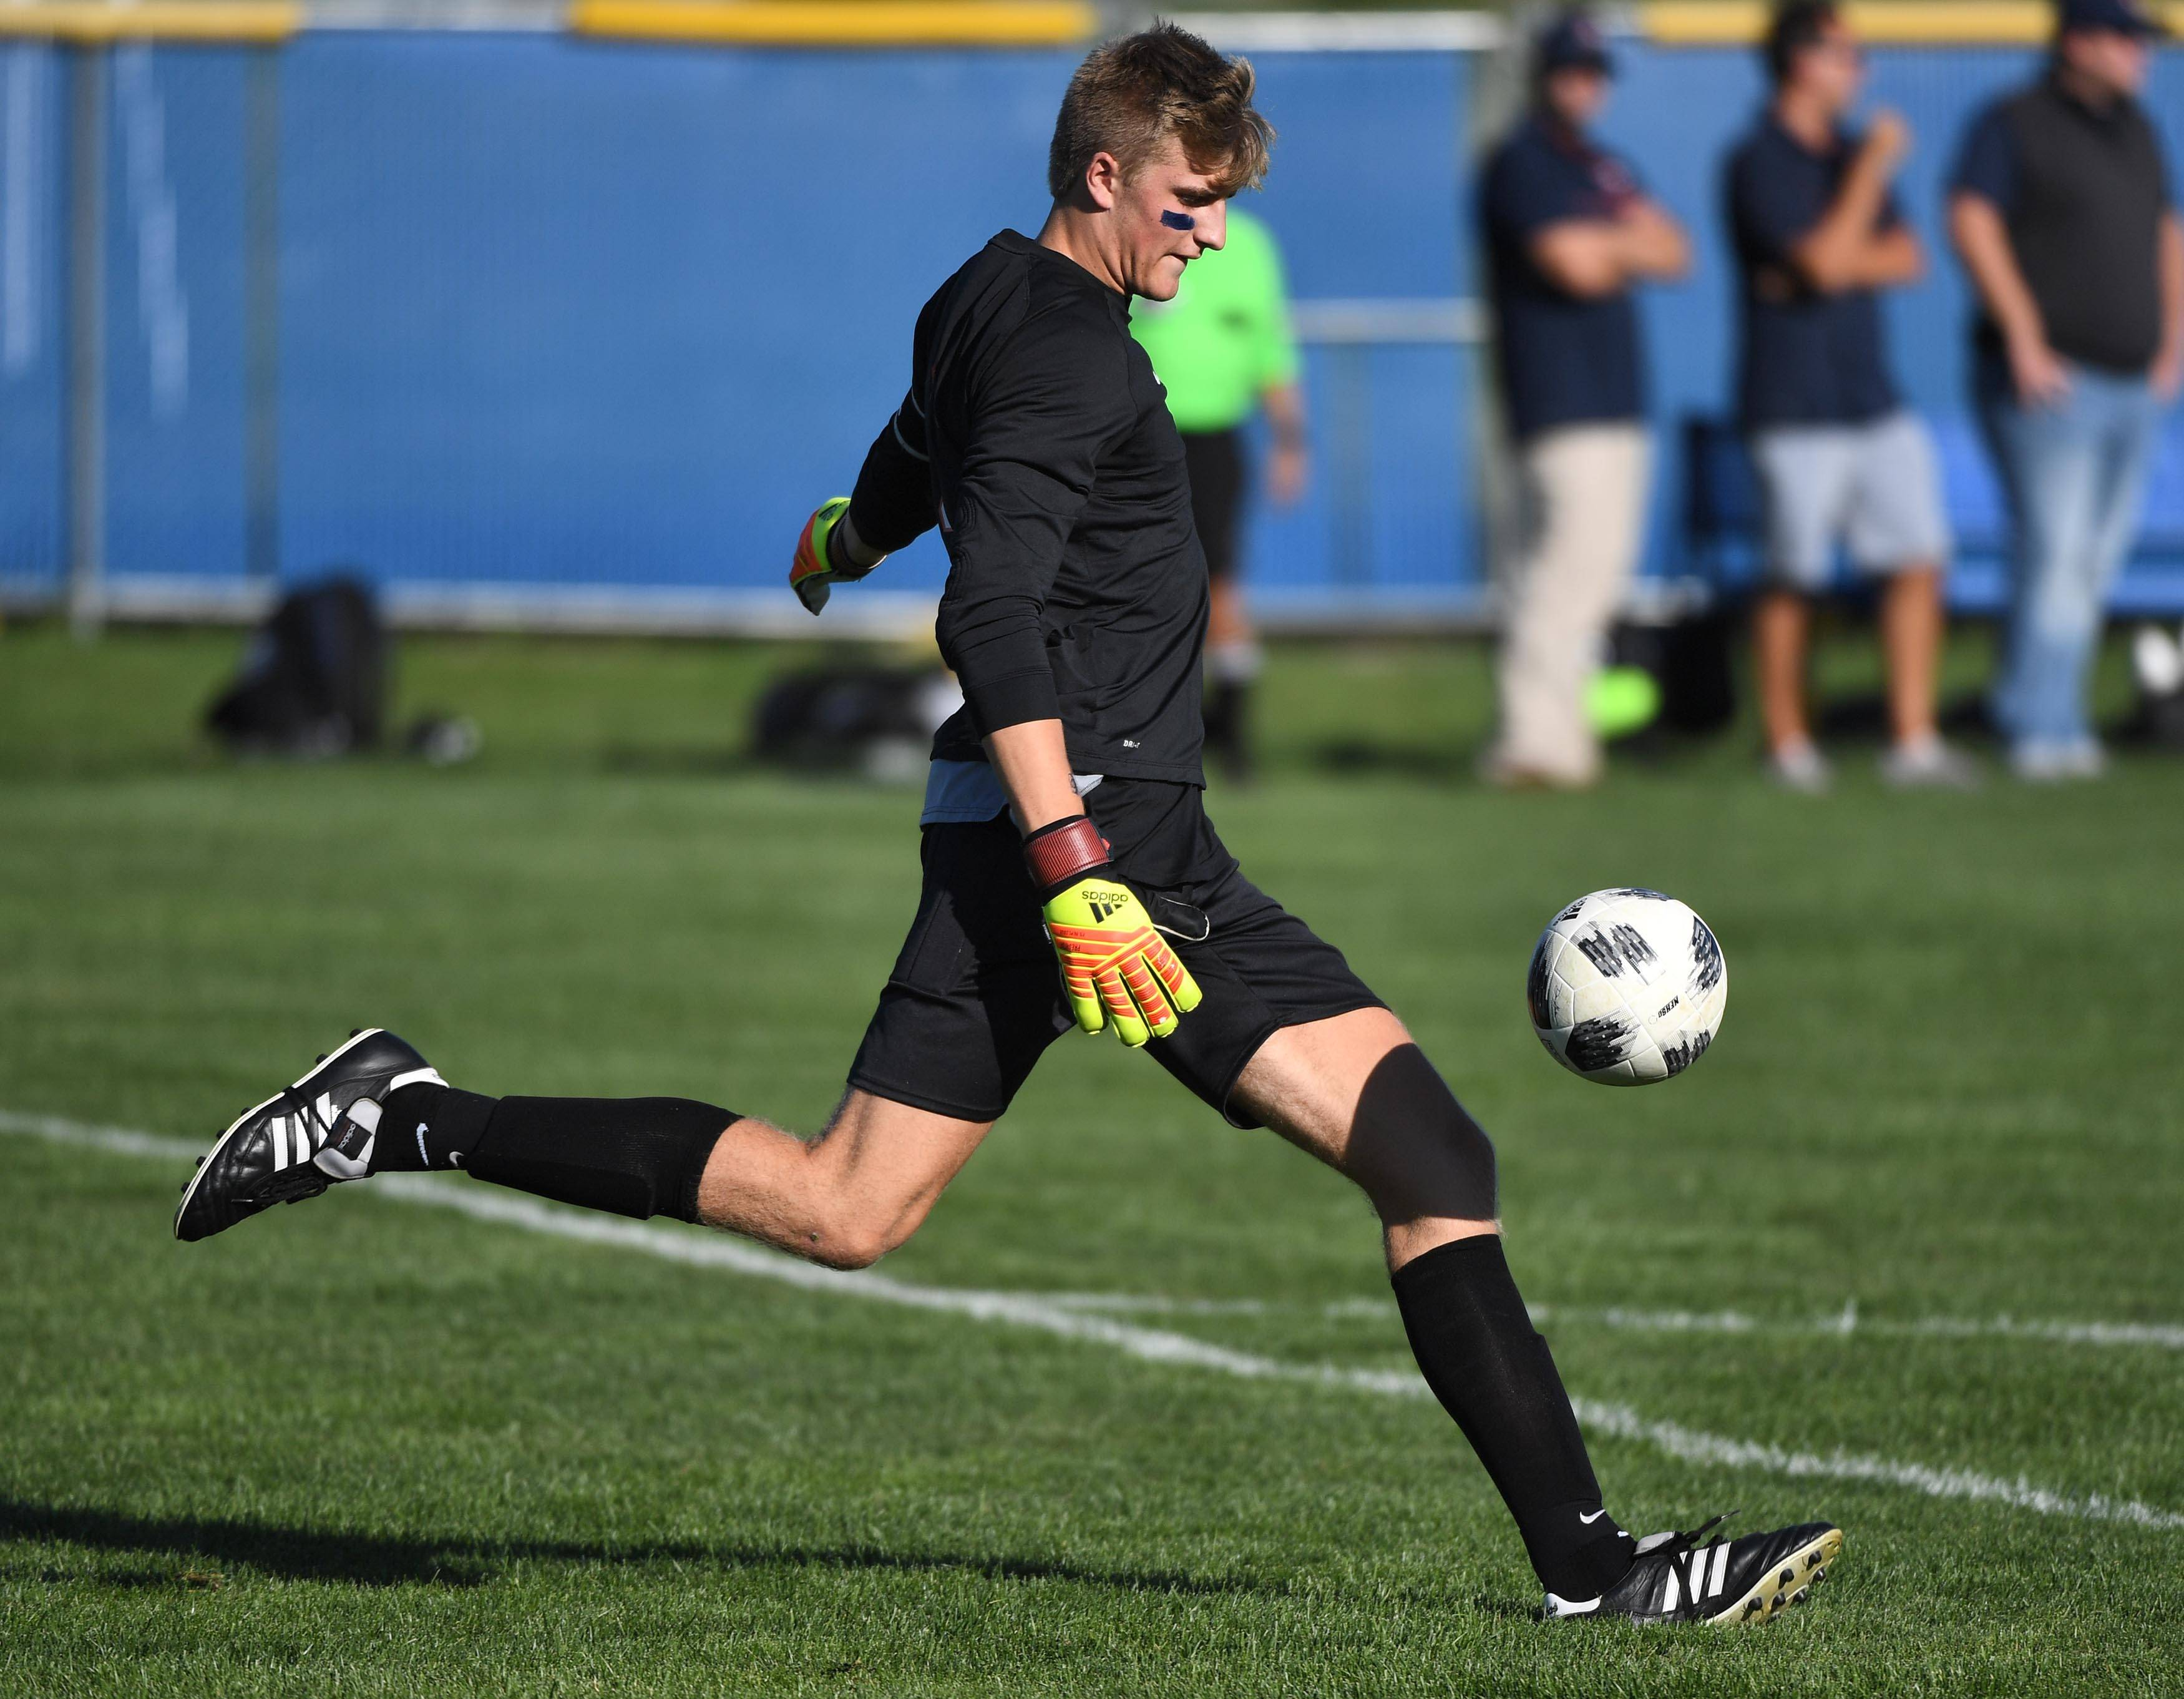 Naperville North goalkeeper Tommy Welch puts the ball in play against Neuqua Valley in a boys soccer game Tuesday in Naperville.